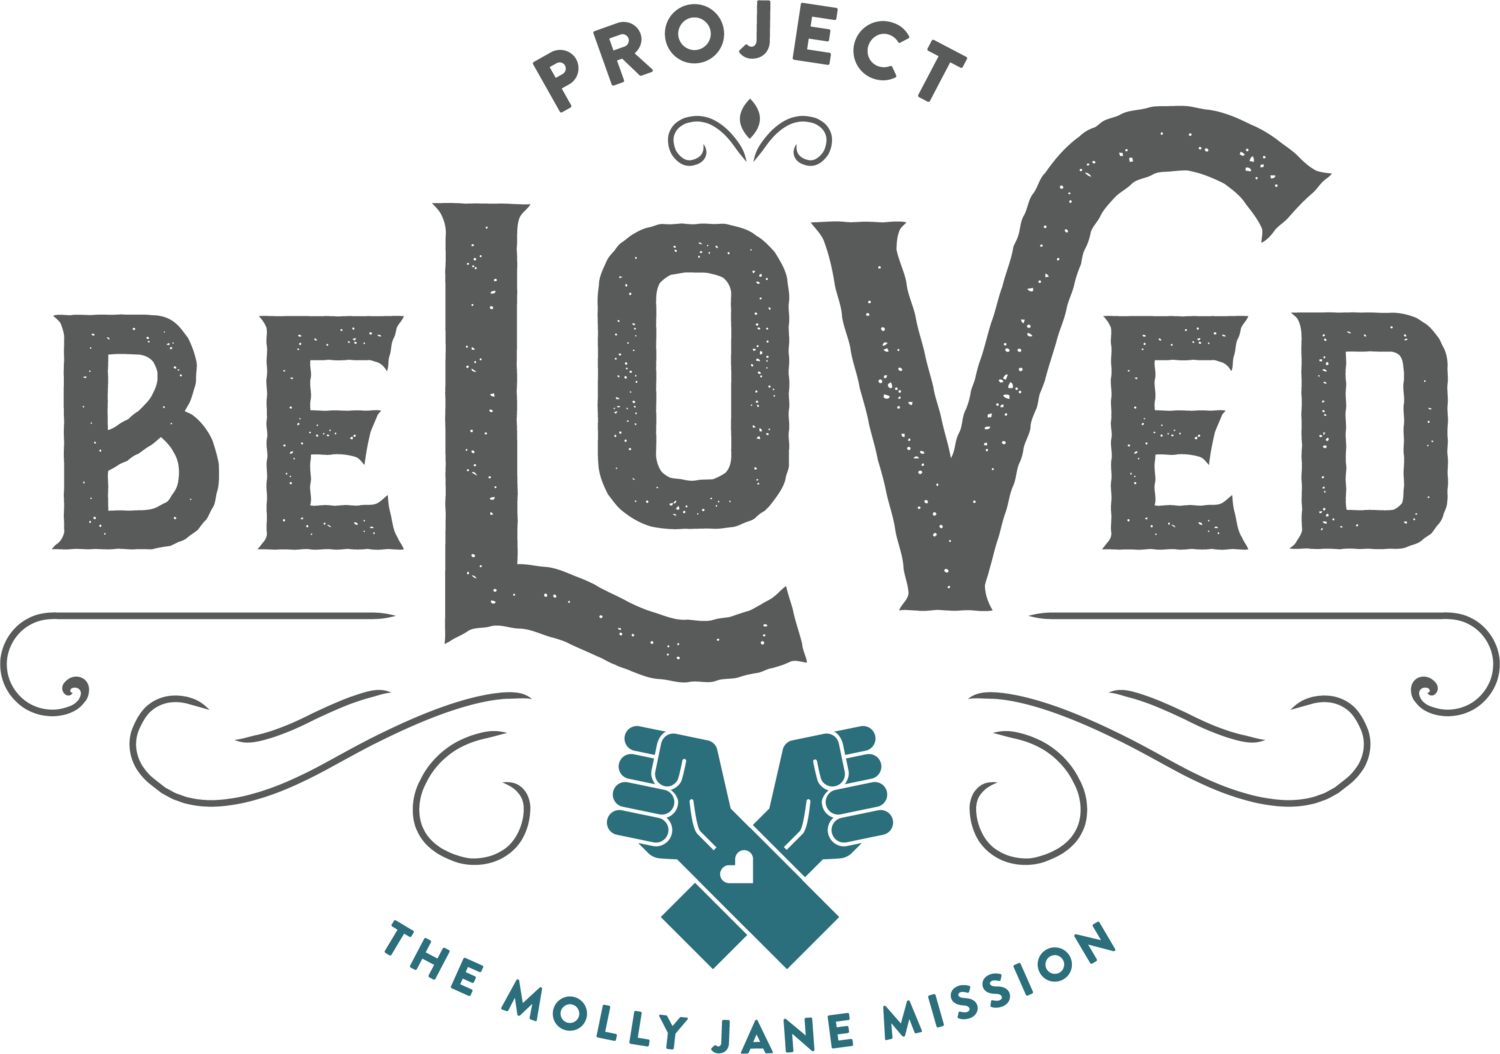 Project Beloved